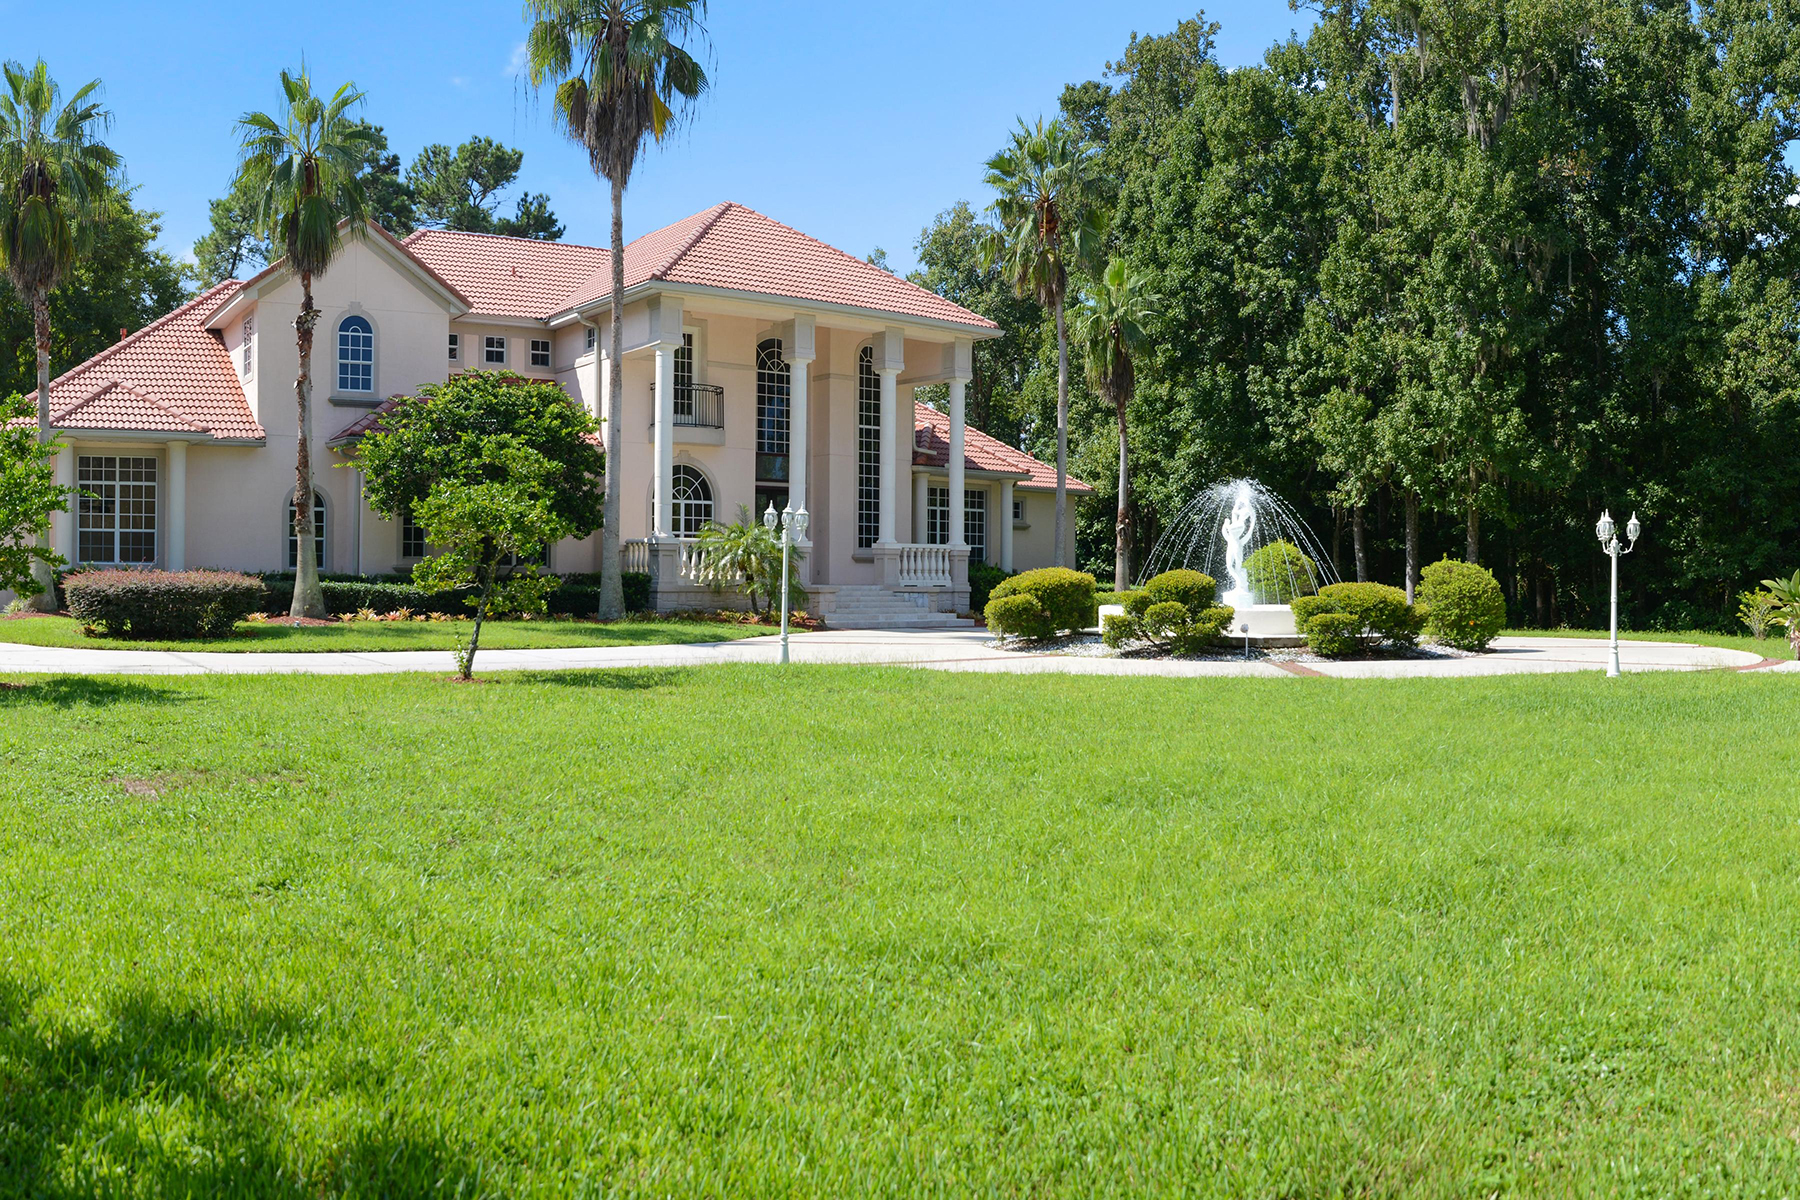 Single Family Home for Sale at OVIEDO 355 W Chapman Rd, Oviedo, Florida 32765 United States